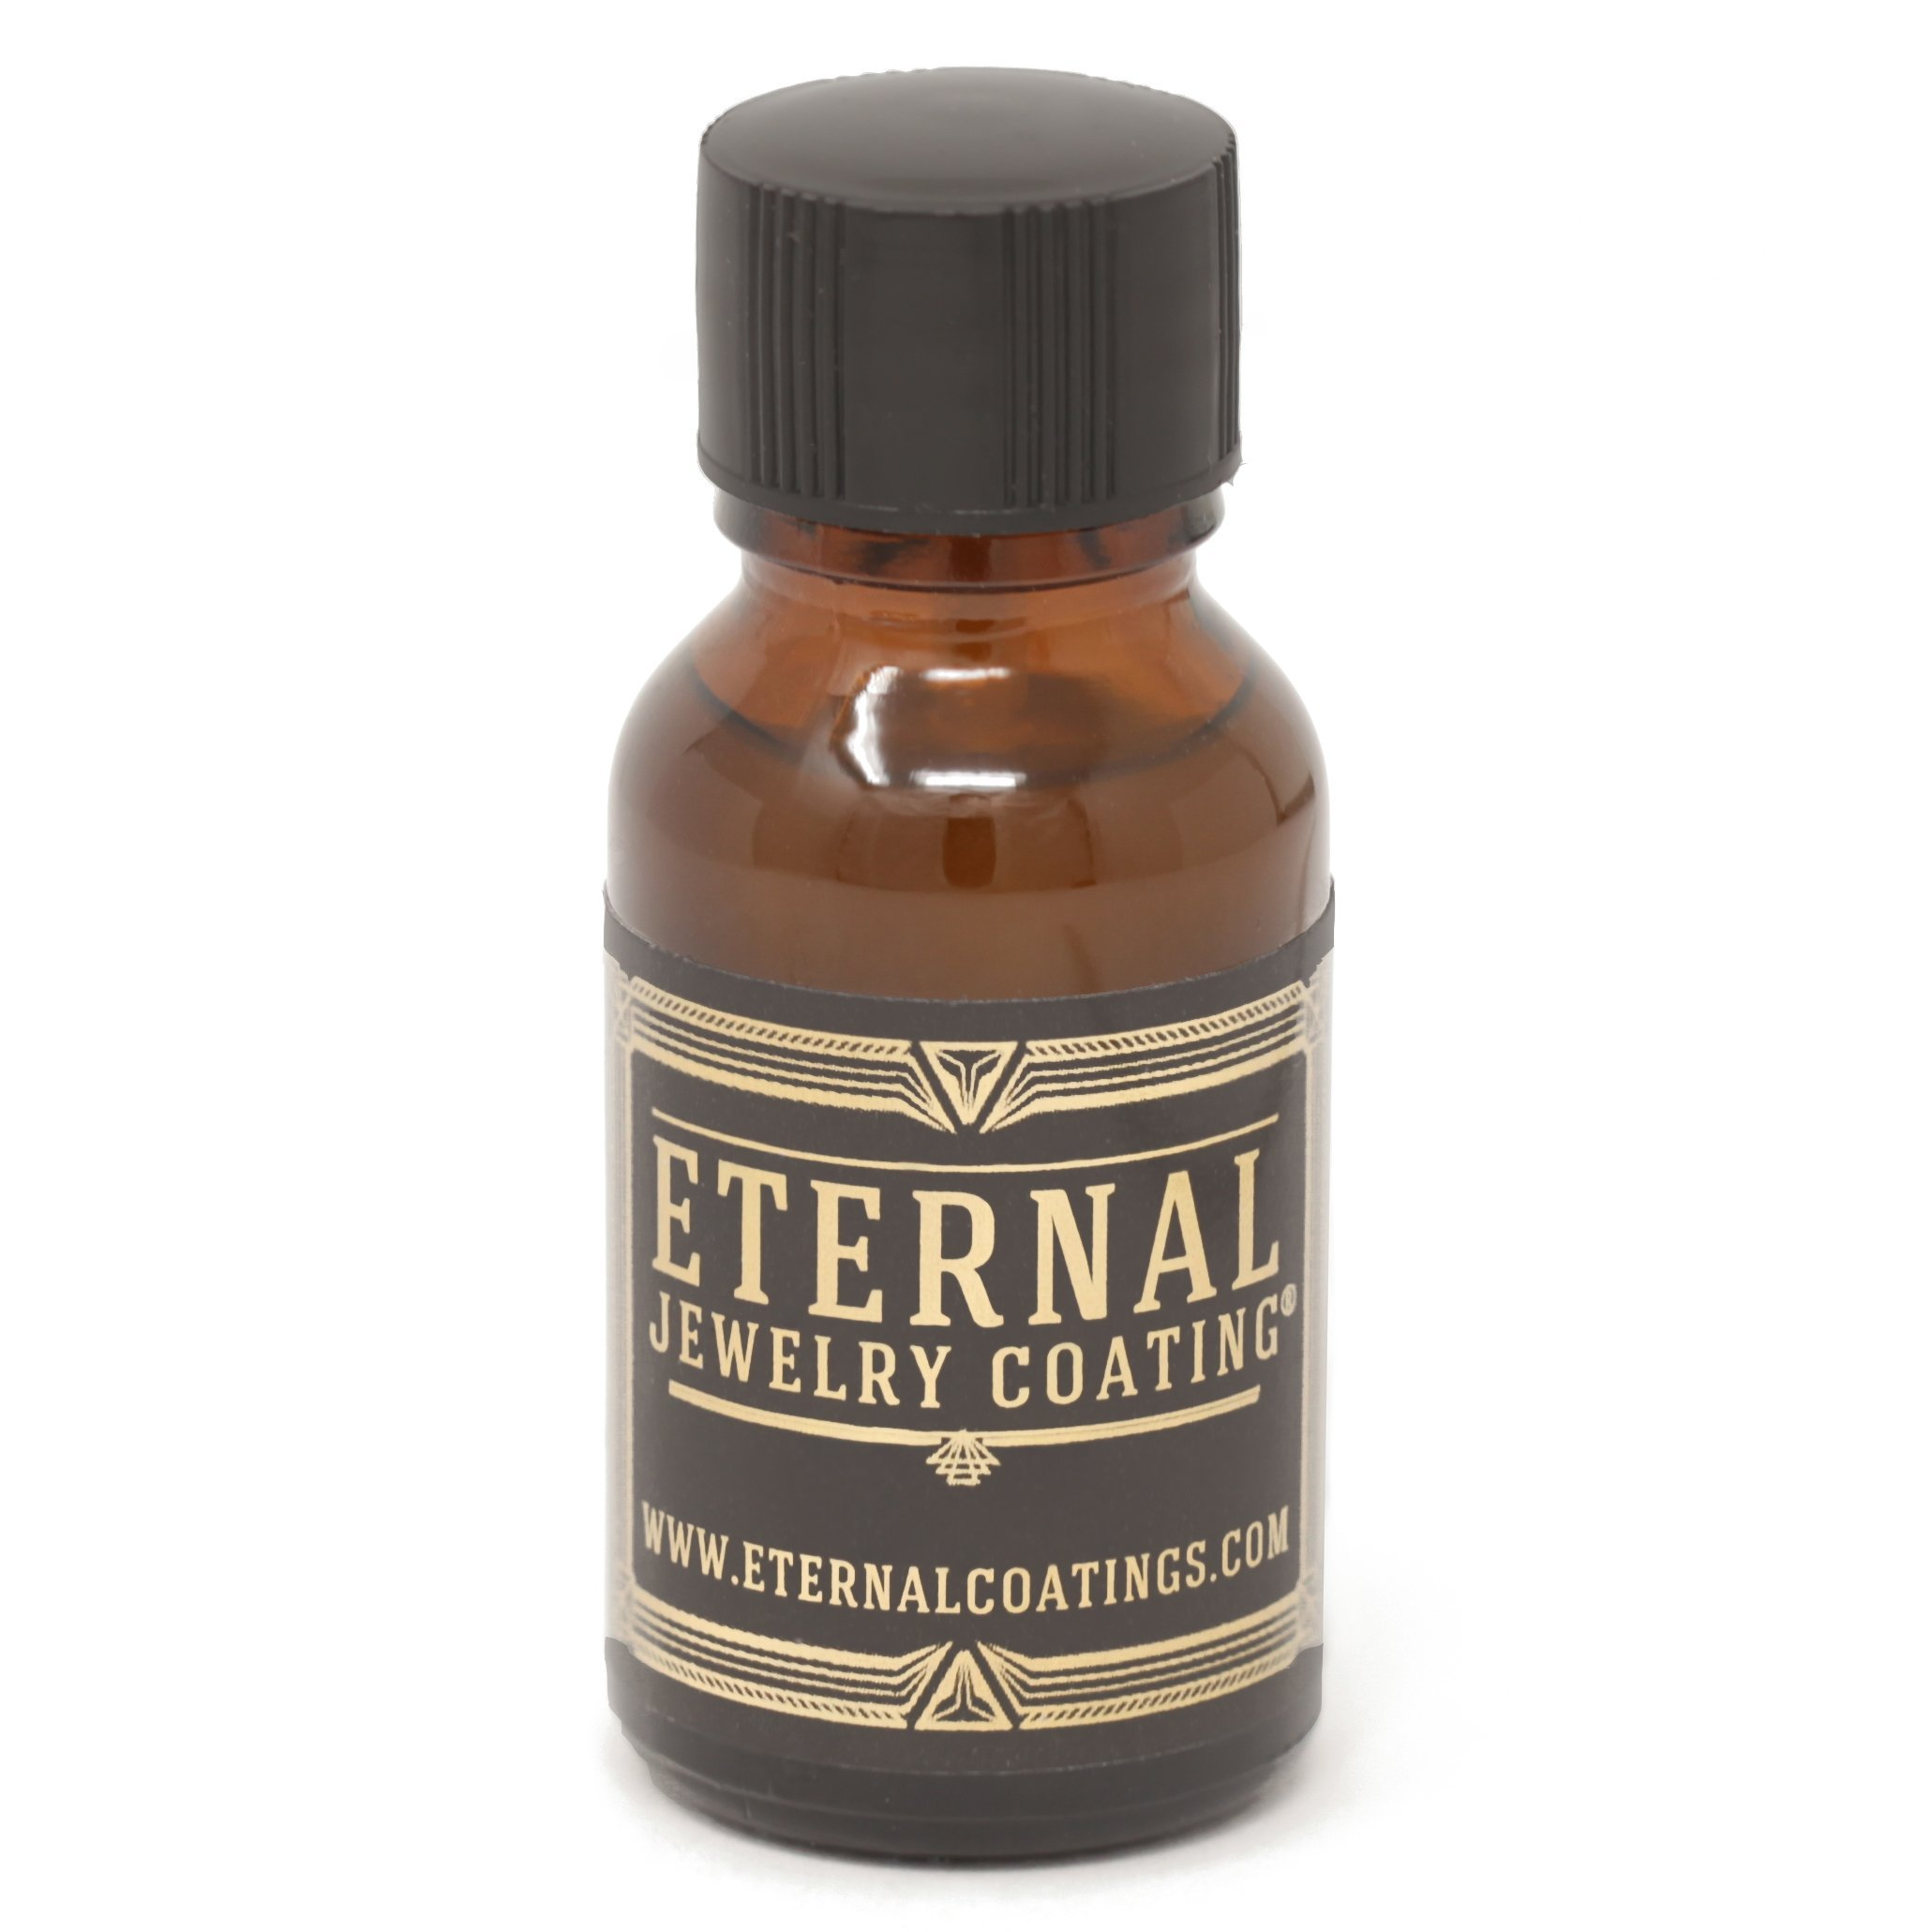 Eternal Jewelry Coating, Clear Protective Polish-on Sealant to Protect and Shield Metal and Stone Jewelry from Tarnish, Wear and Prevent Allergies .5oz by Eternal Coatings